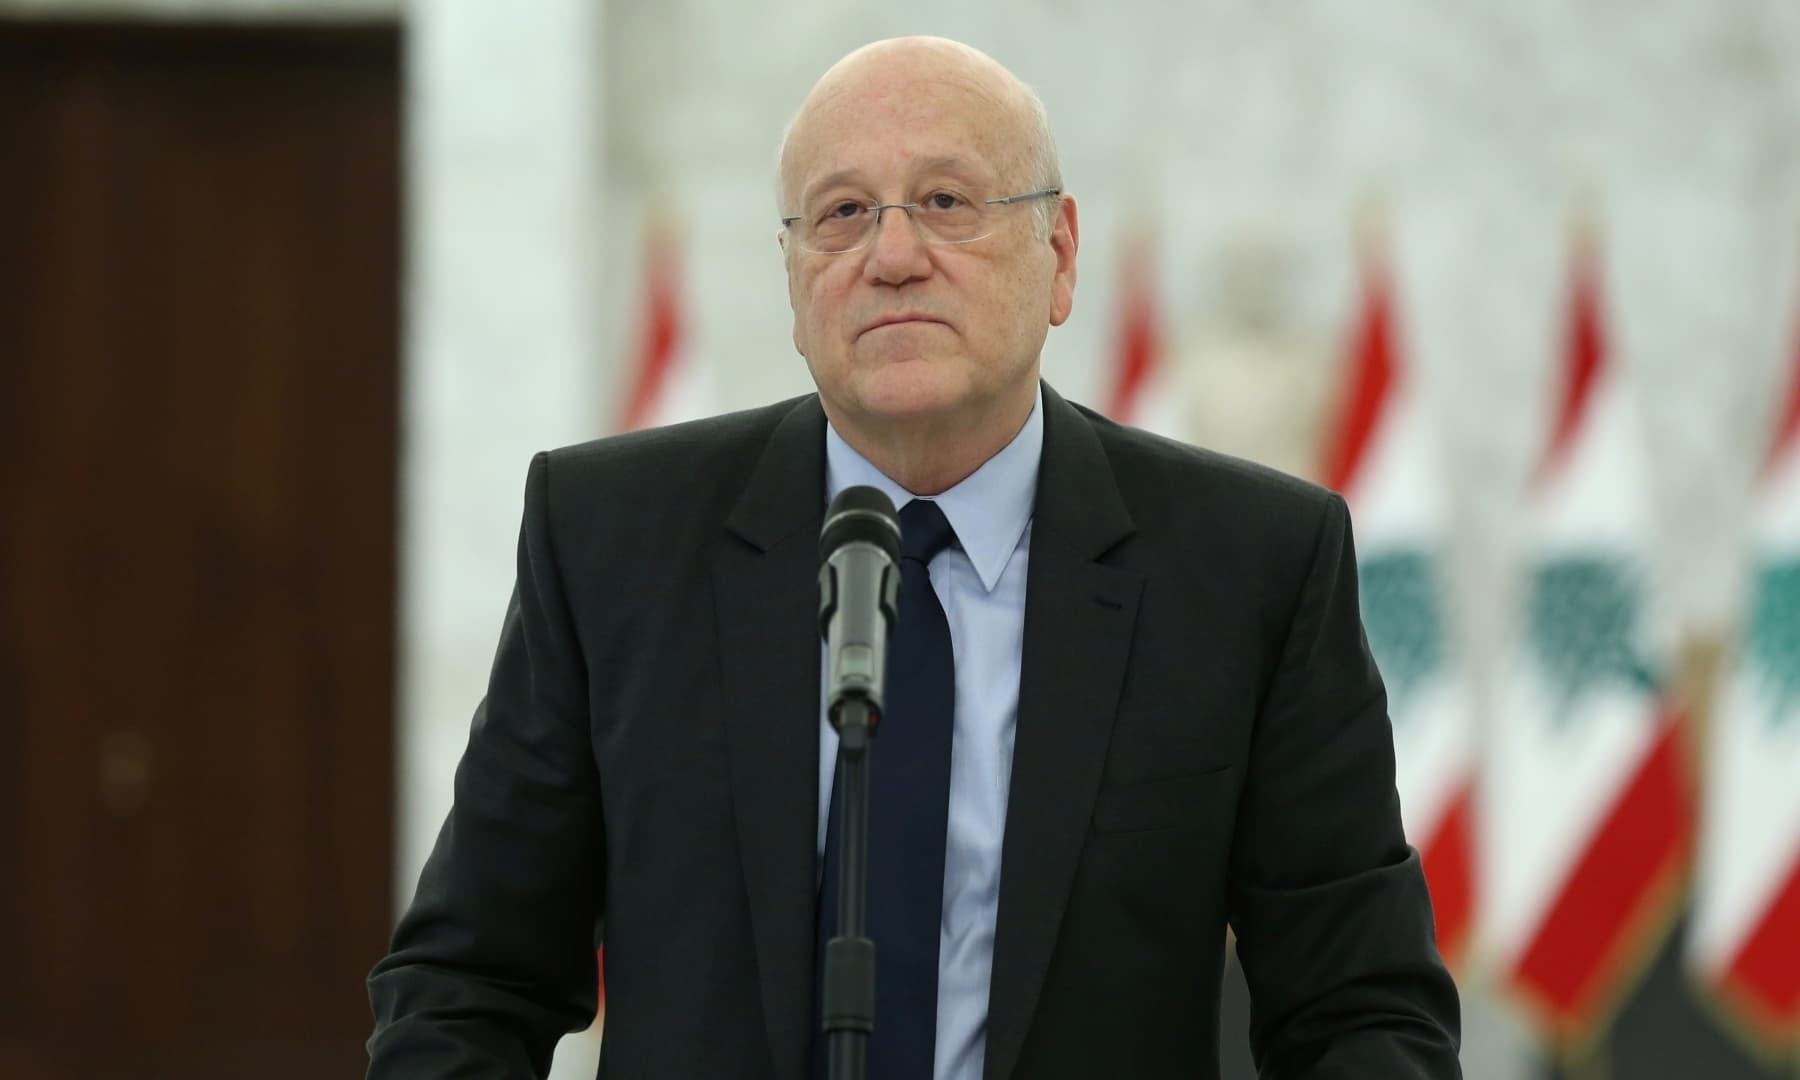 Lebanon's Prime Minister-Designate Najib Mikati speaks after meeting with Lebanon's President Michel Aoun, at the presidential palace in Baabda, Lebanon on August 16, 2021. — Reuters/File